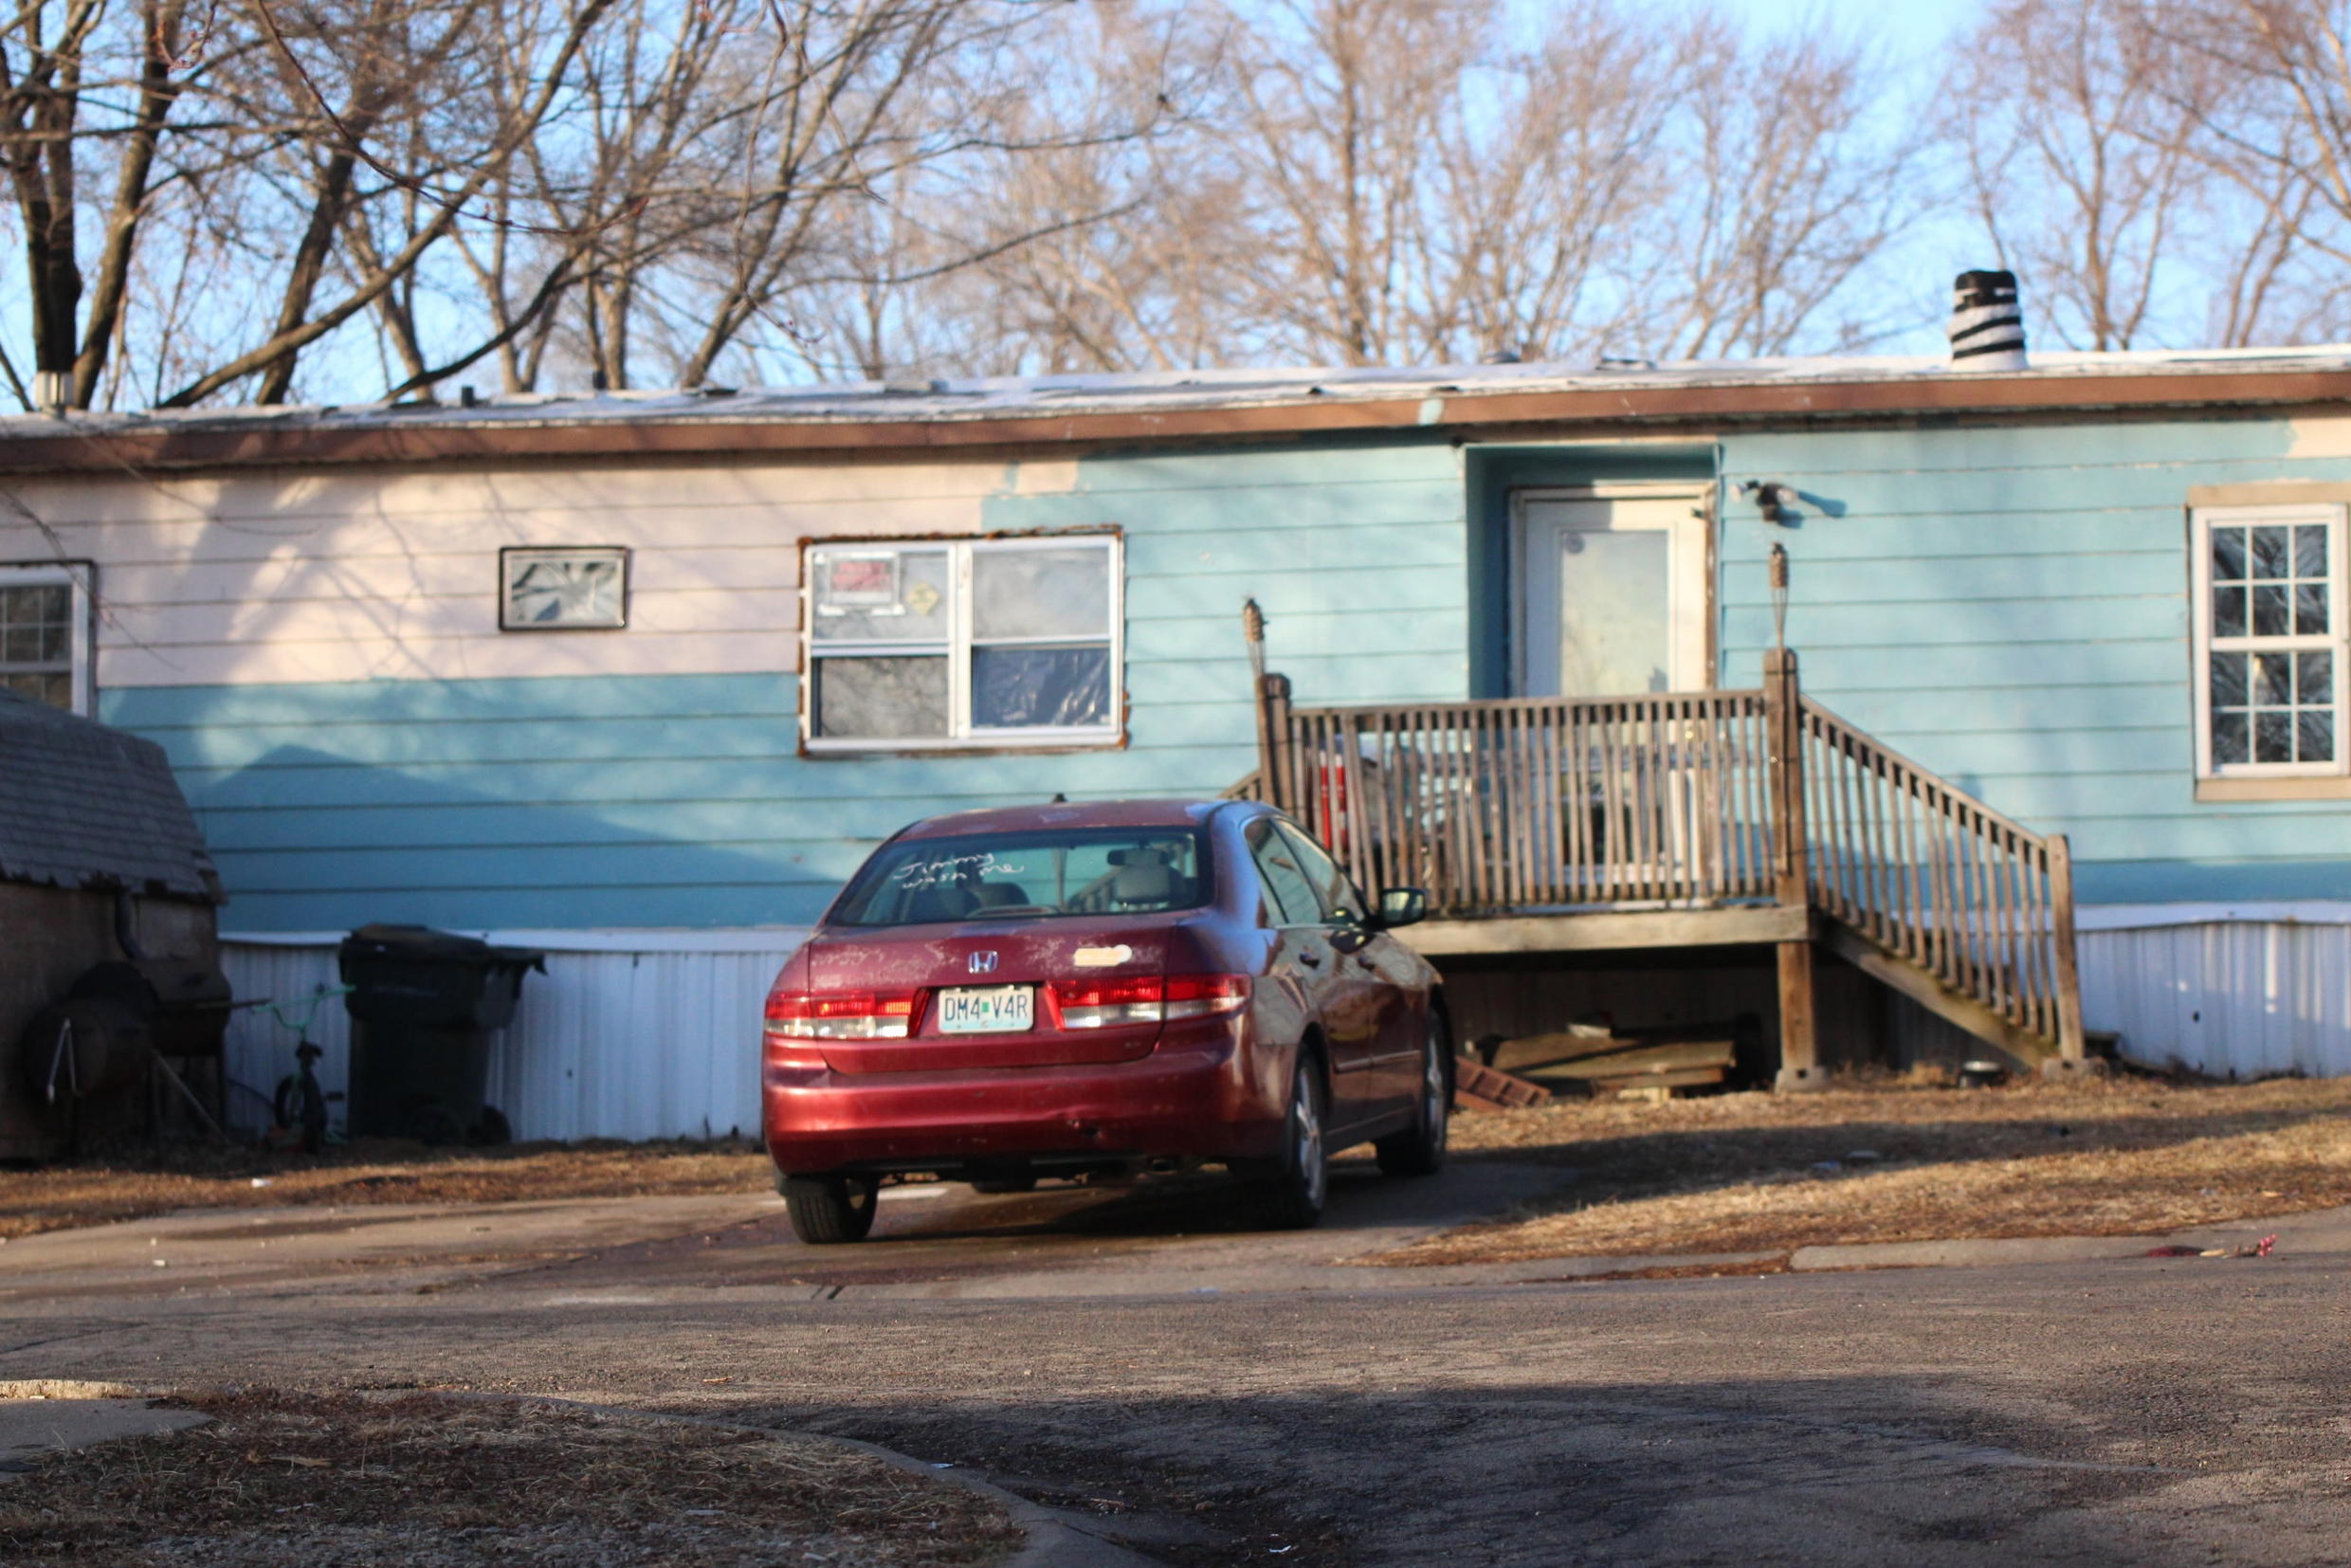 CODY THORN/Citizen photo A shooting was reported Thursday, Jan. 4 at this residence in Ferrelview, Mo. A toddler was injured with officials reporting another child pulled the trigger.